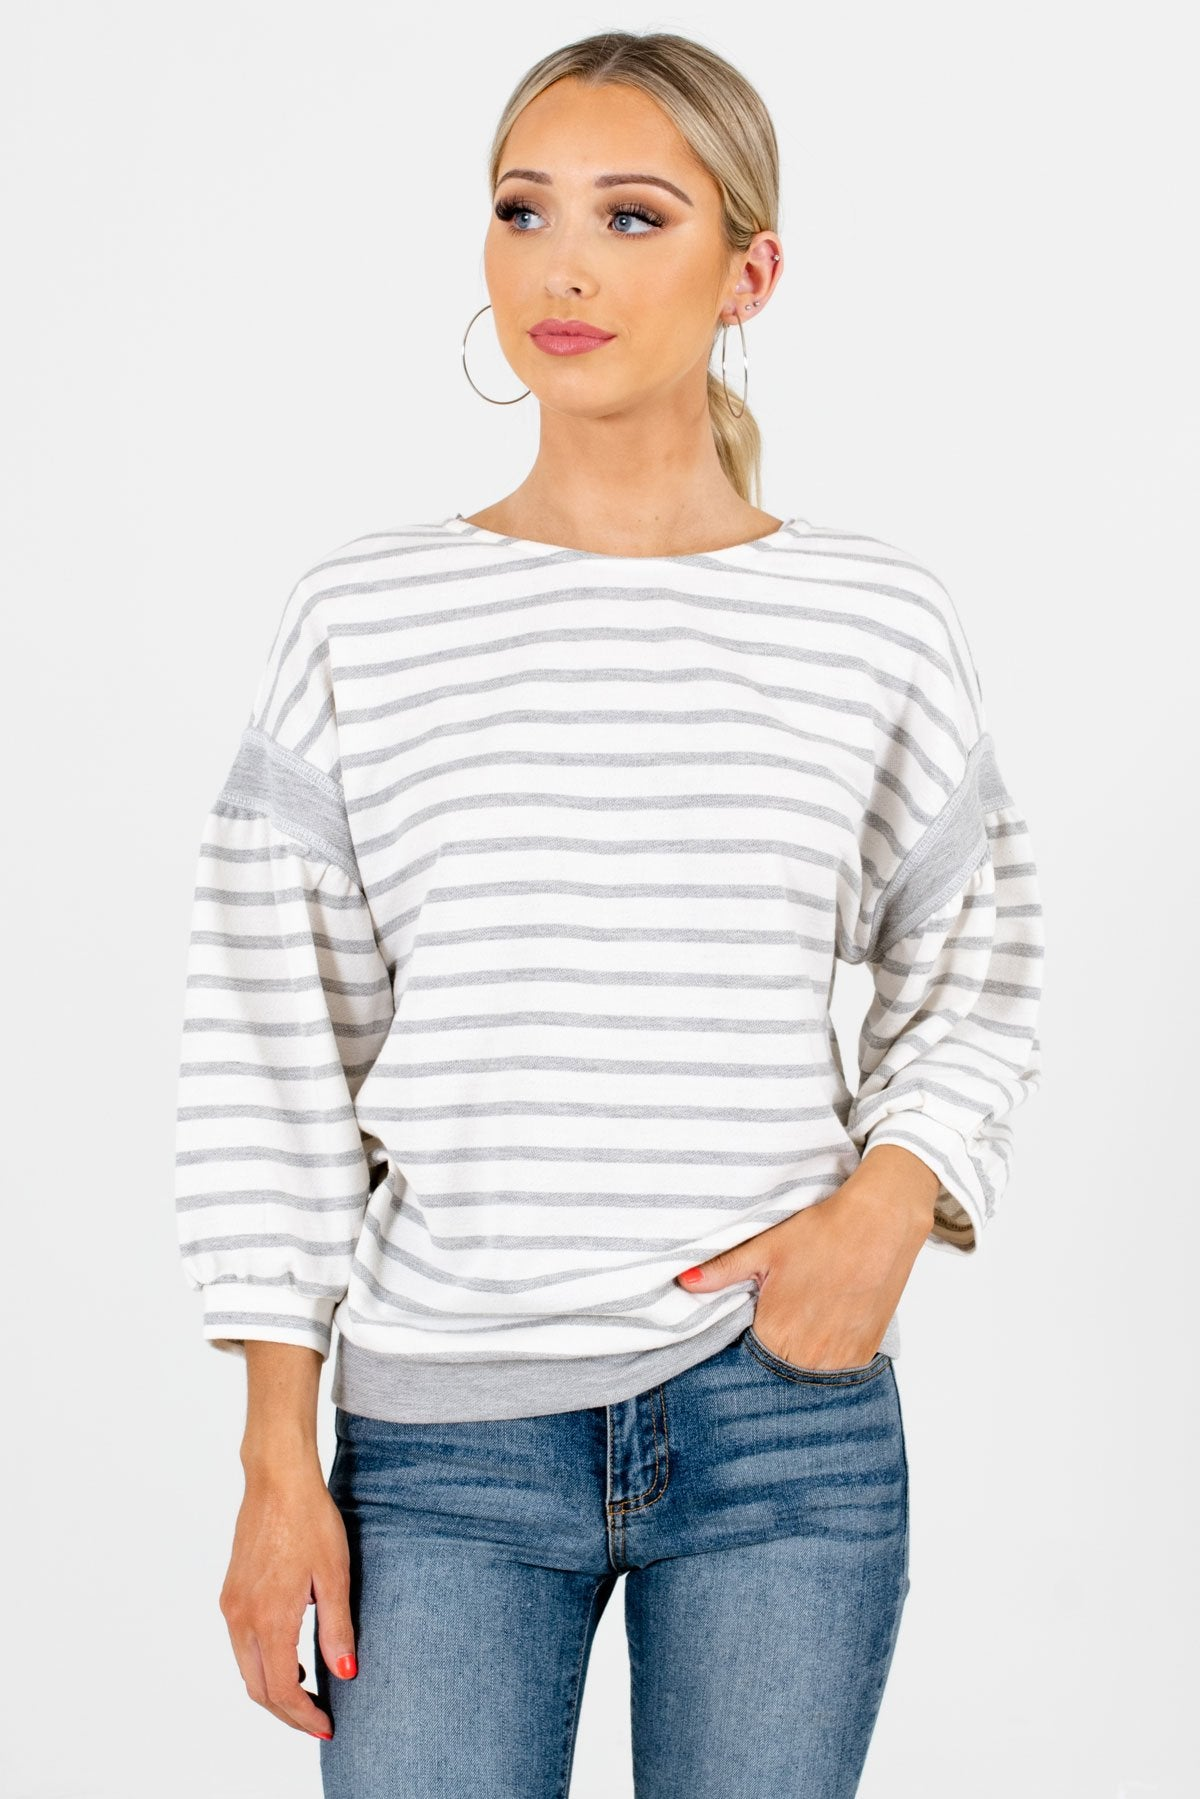 White and Gray Striped Pattern Boutique Tops for Women